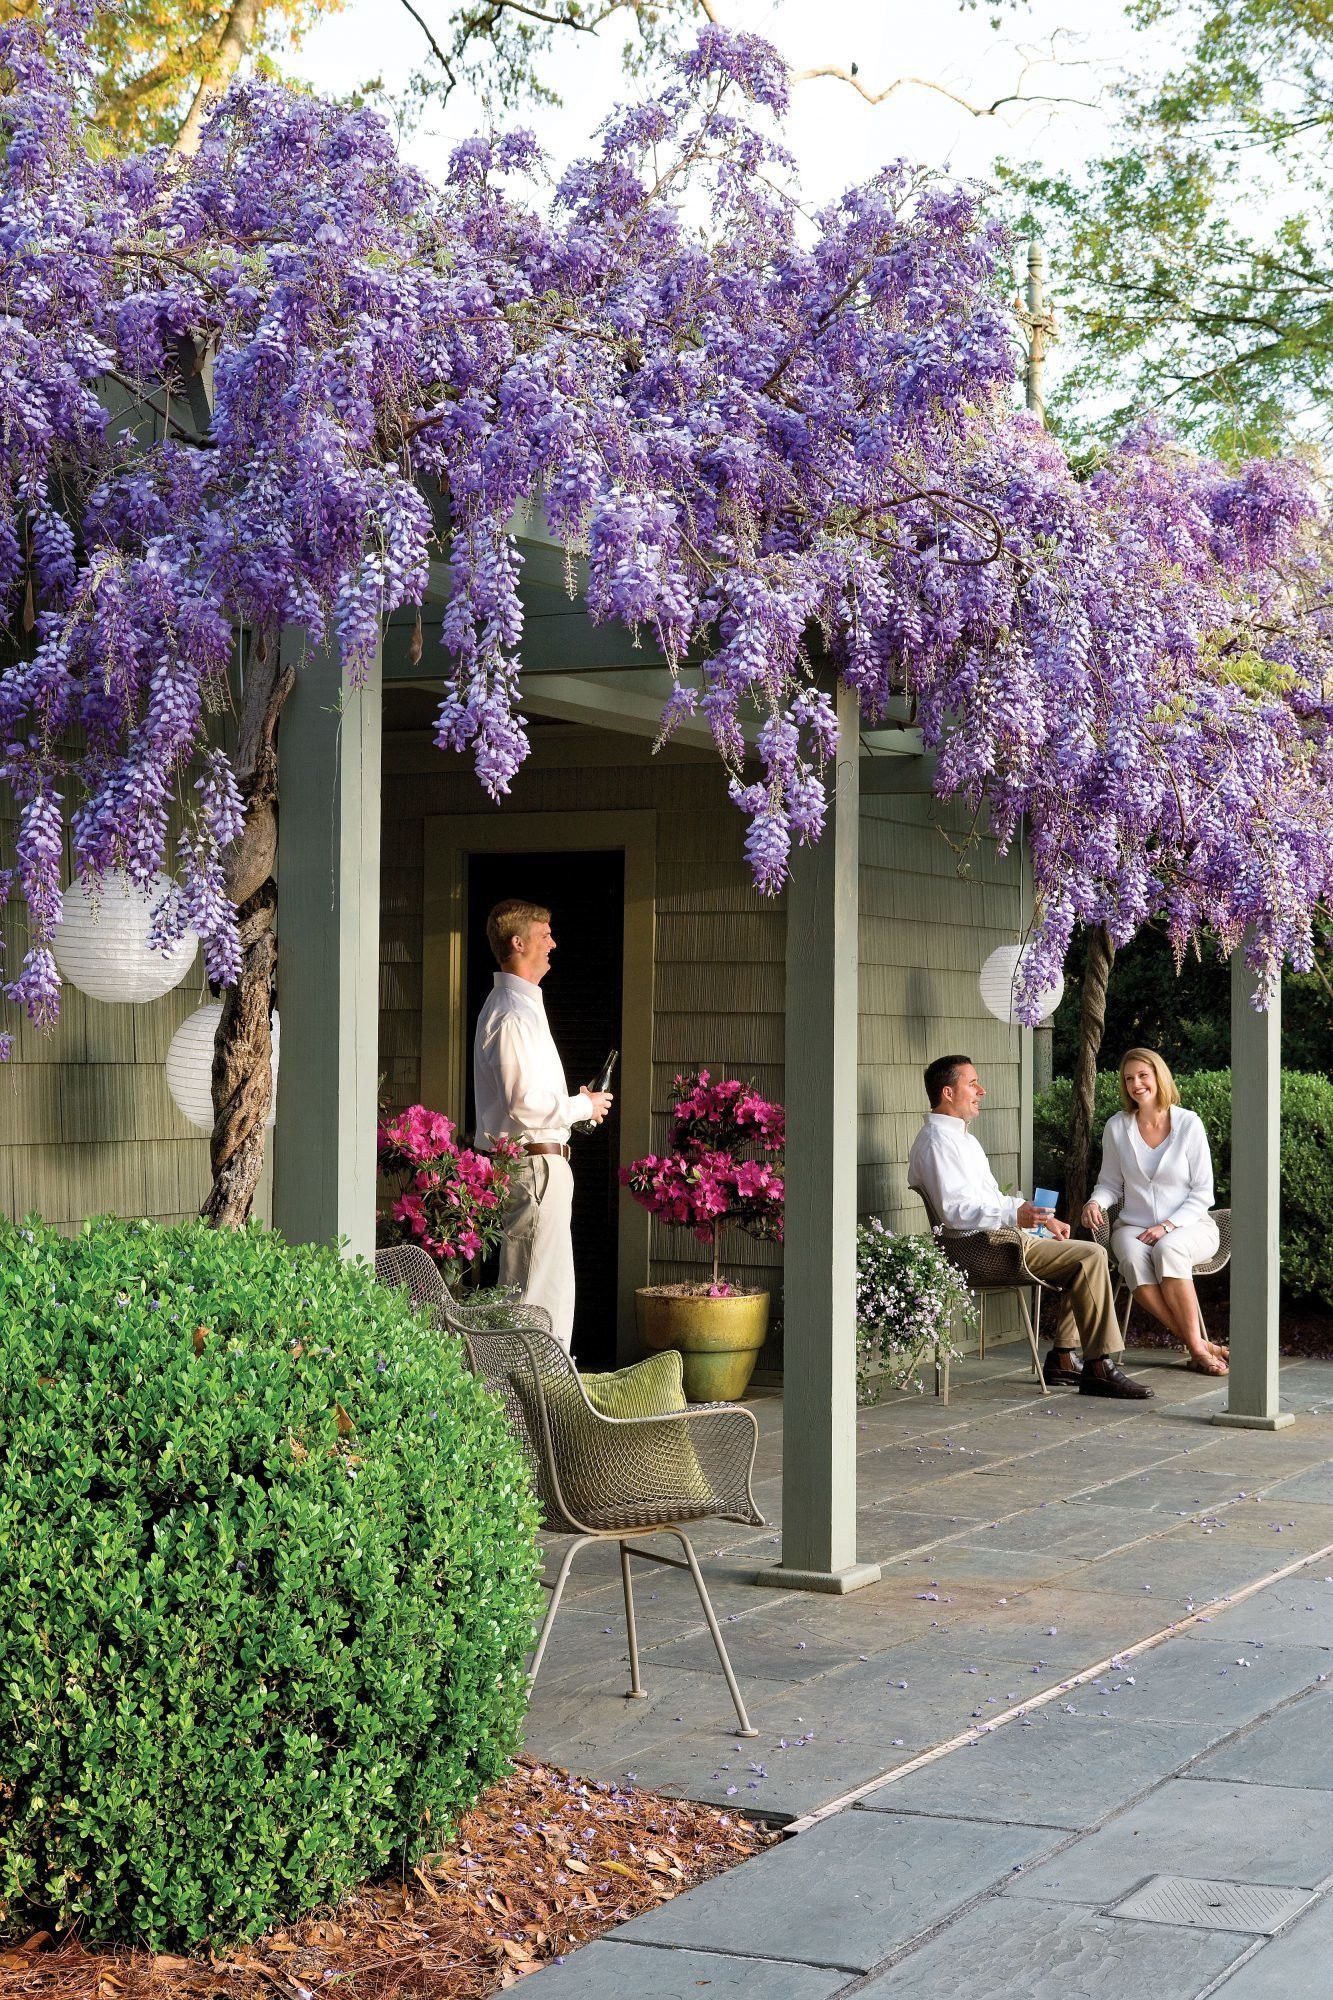 The Truth About Wisteria Plant Requirements Is About To Be Revealed Wisteria Plant Requirem In 2020 Wisteria Garden Wisteria Plant Wisteria Trellis